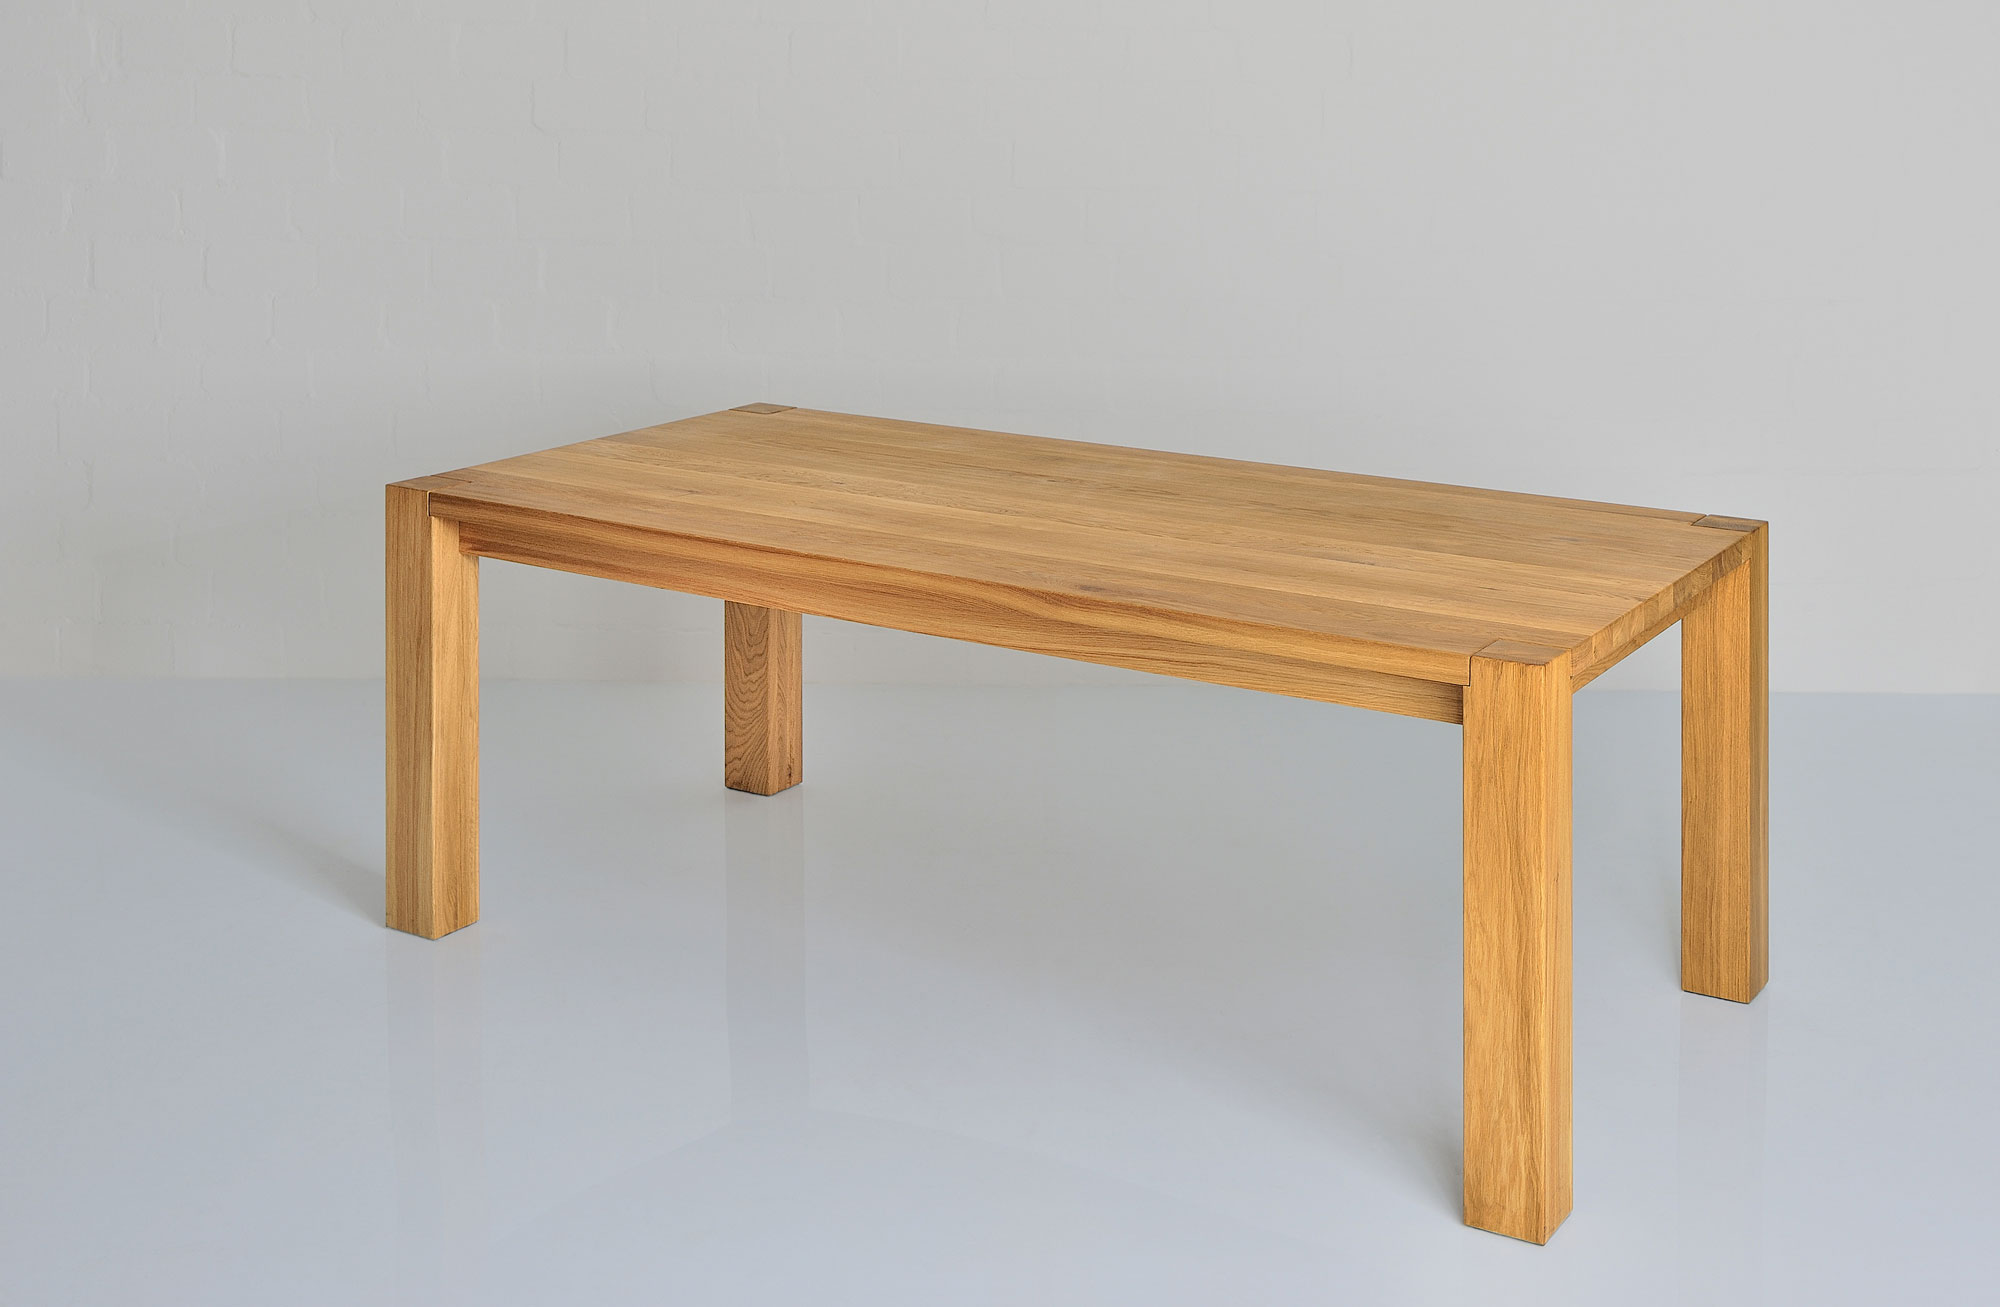 Rustic Oak Table TAURUS 4 B11X11 1111 custom made in solid wood by vitamin design